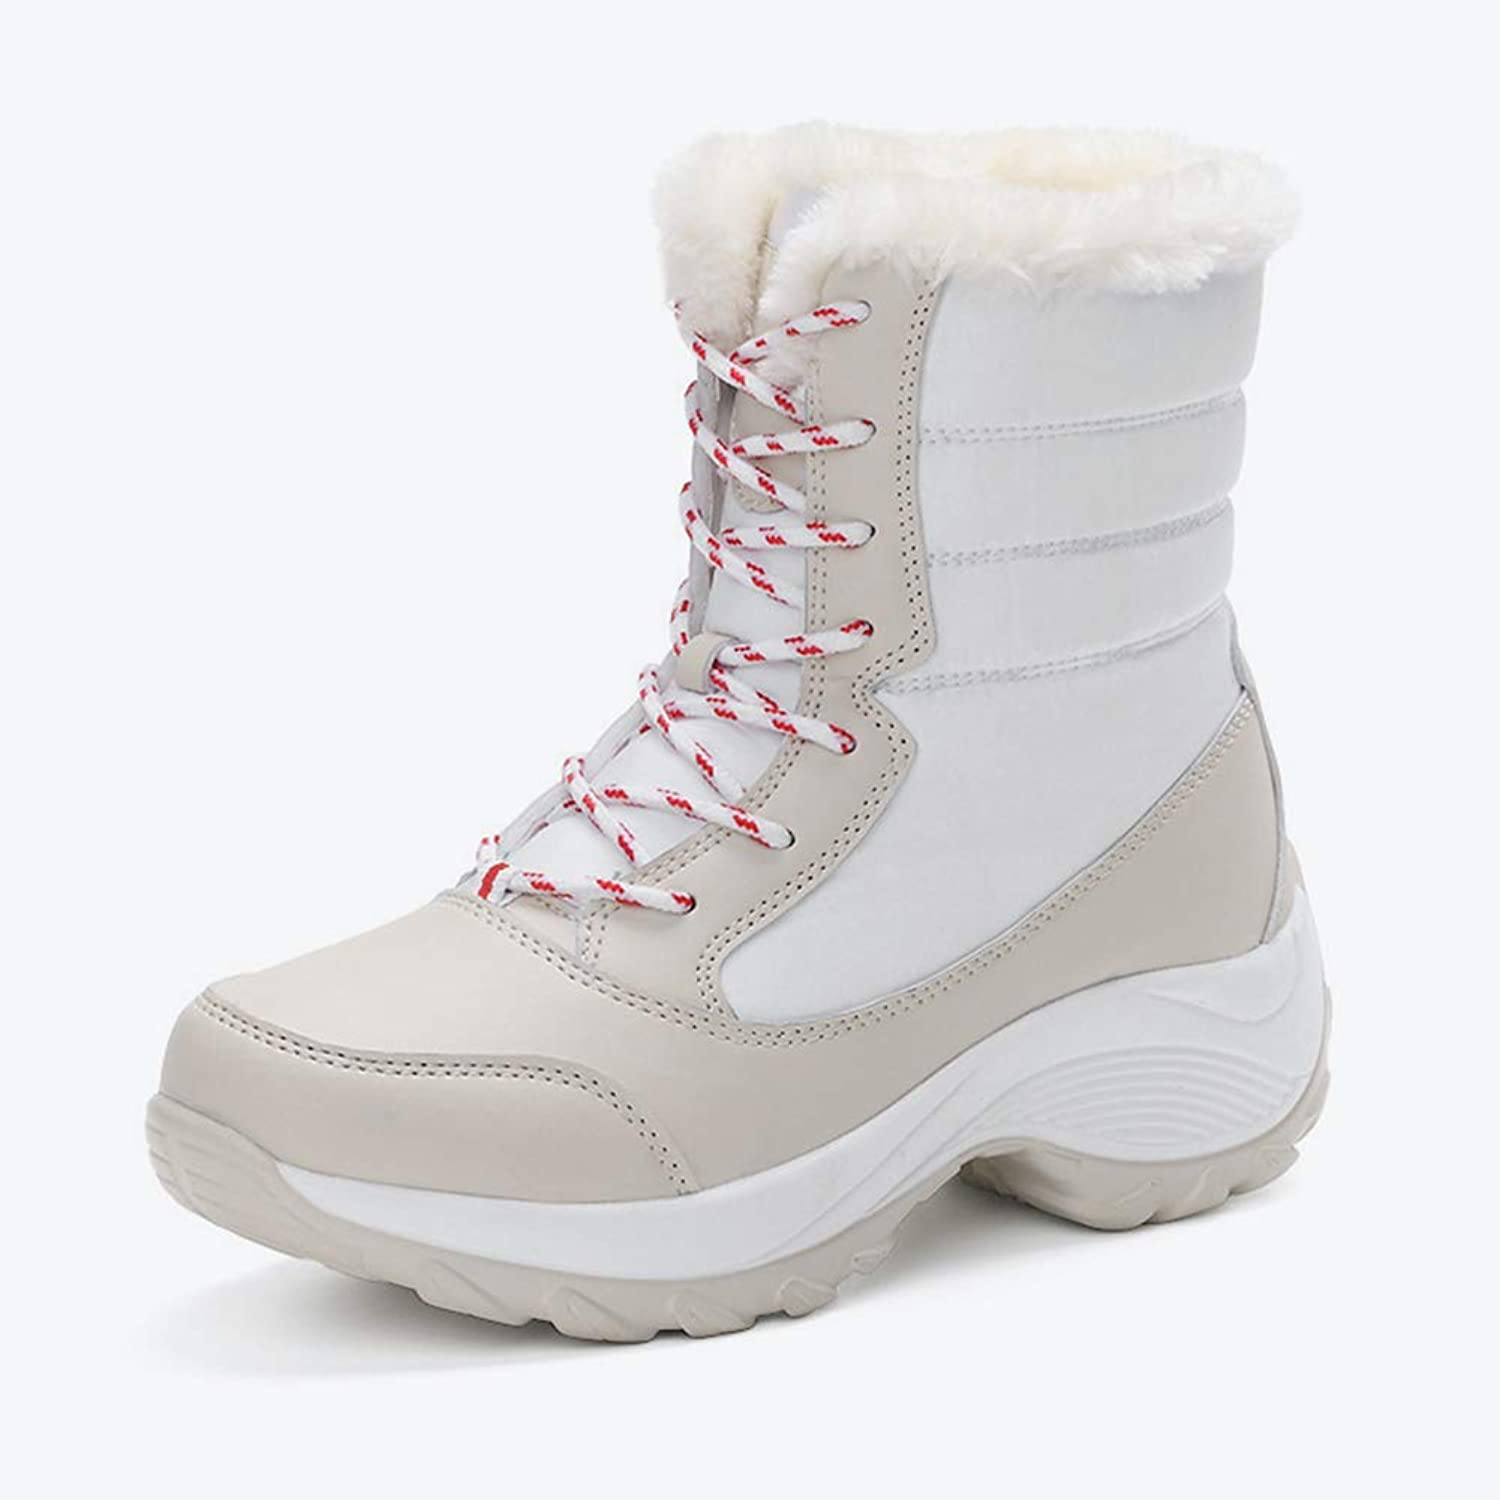 T-JULY Women Casual Mid Calf Boots Winter Faux Fur Ladies Platform Flat Lace Up Warm shoes Female Leisure